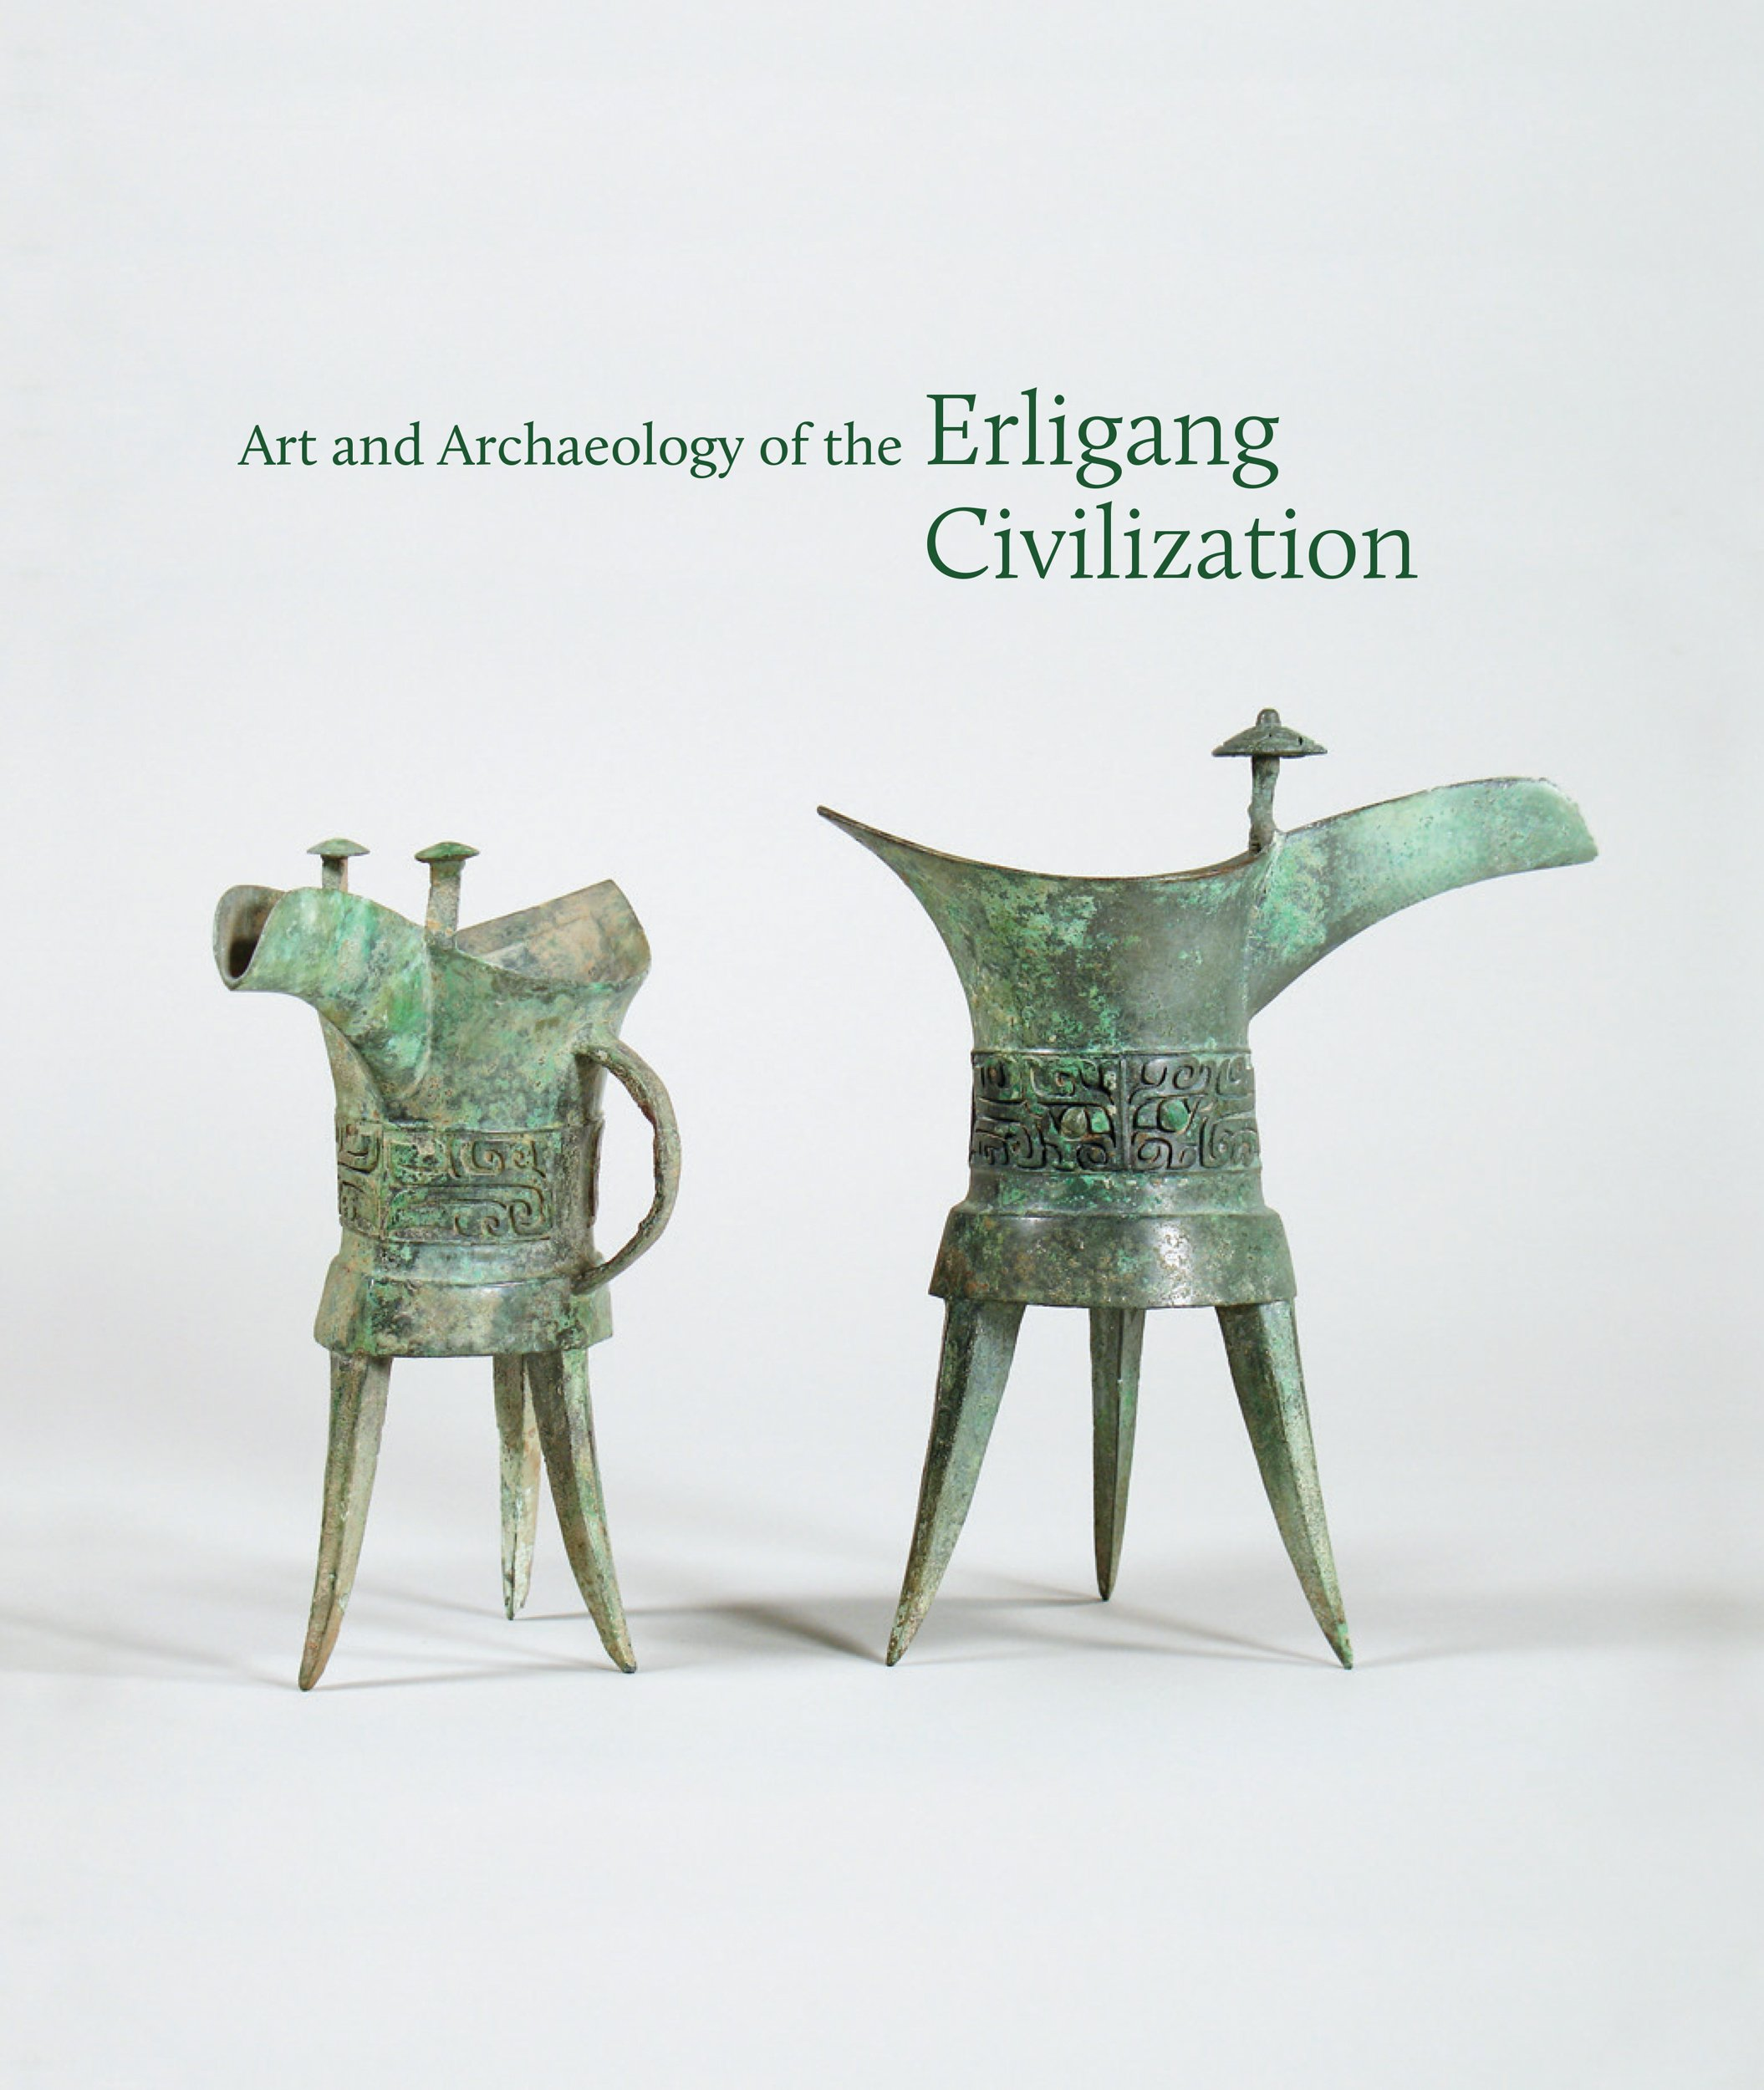 Download Art and Archaeology of the Erligang Civilization (Publications of the Department of Art and Archaeology, Princeton University) PDF